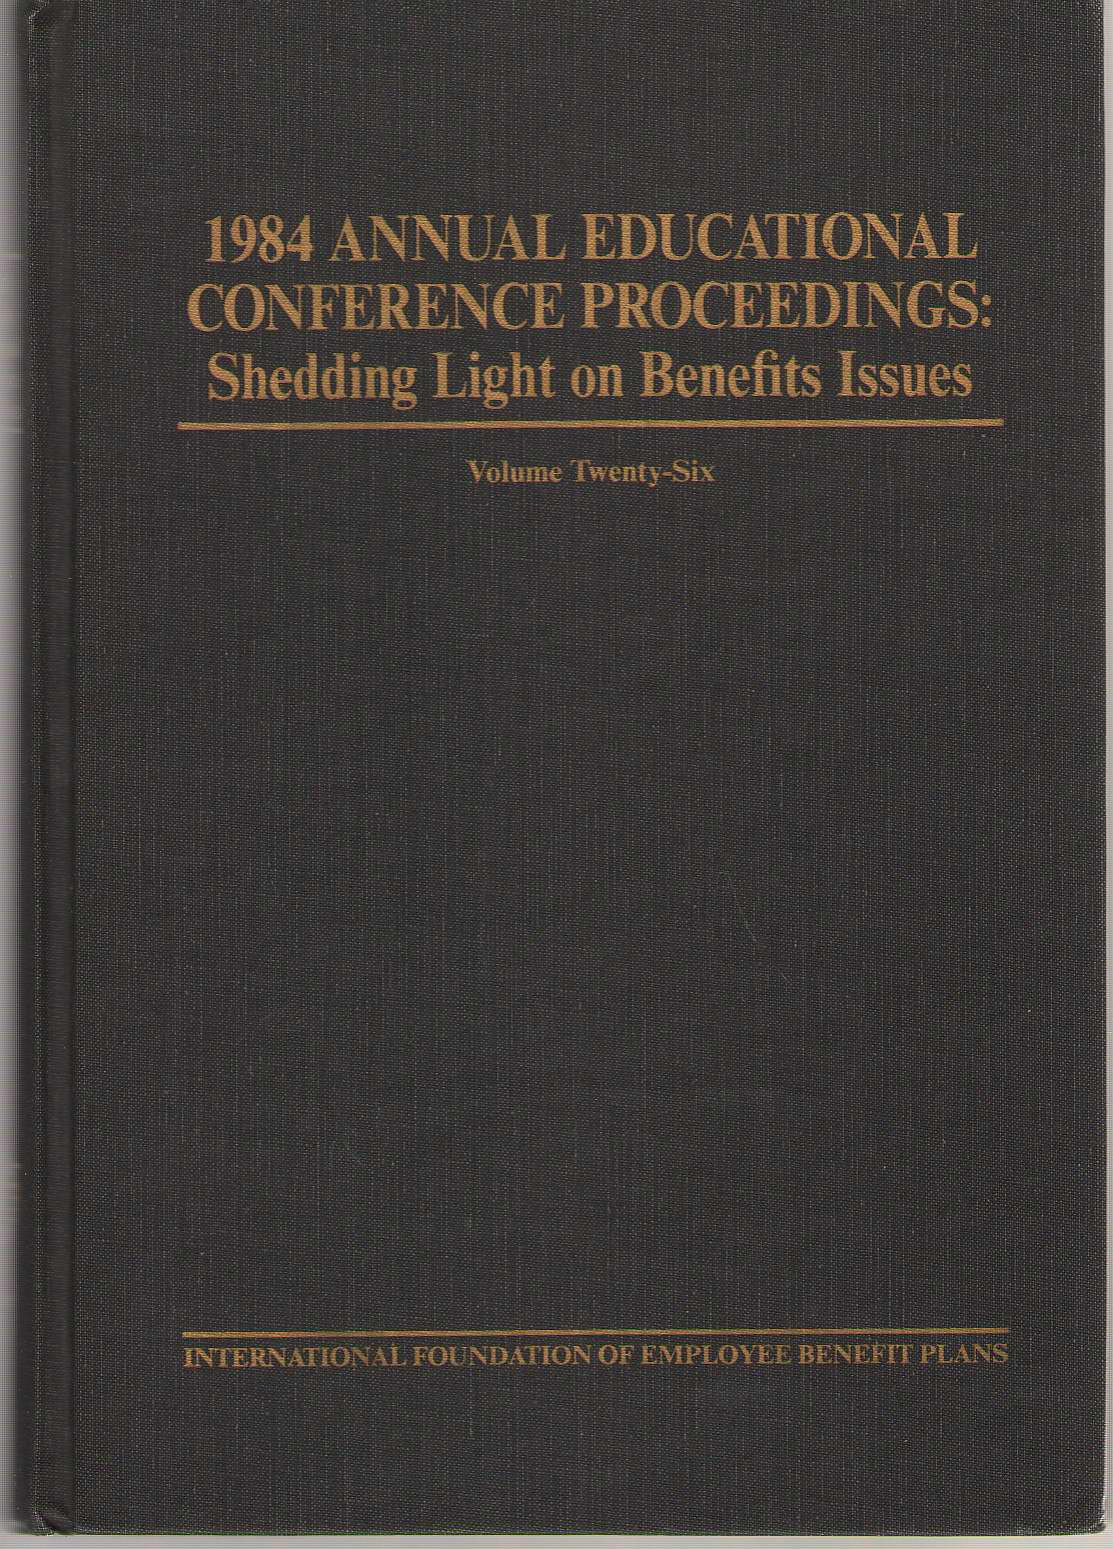 Image for 1984 Annual Educational Conference Proceedings Shedding Light on Benefits Issues